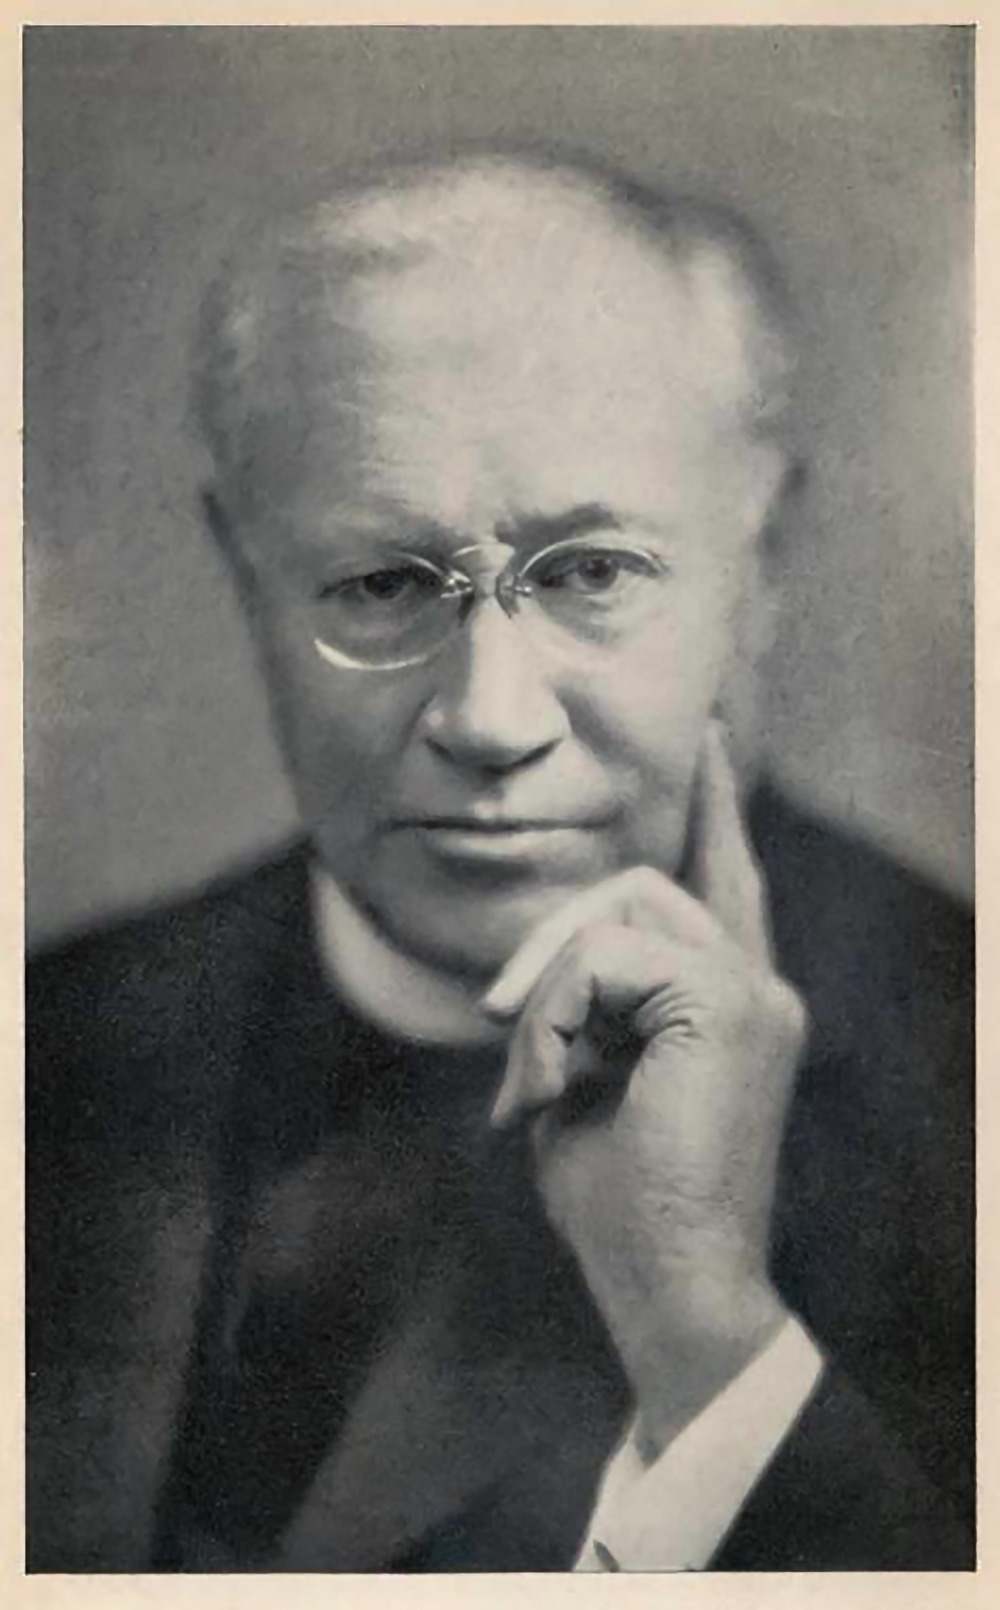 The Reverend Dr. Selden Peabody DeLaney, D.D., 4th Rector of Saint Mary's (1929-1930)